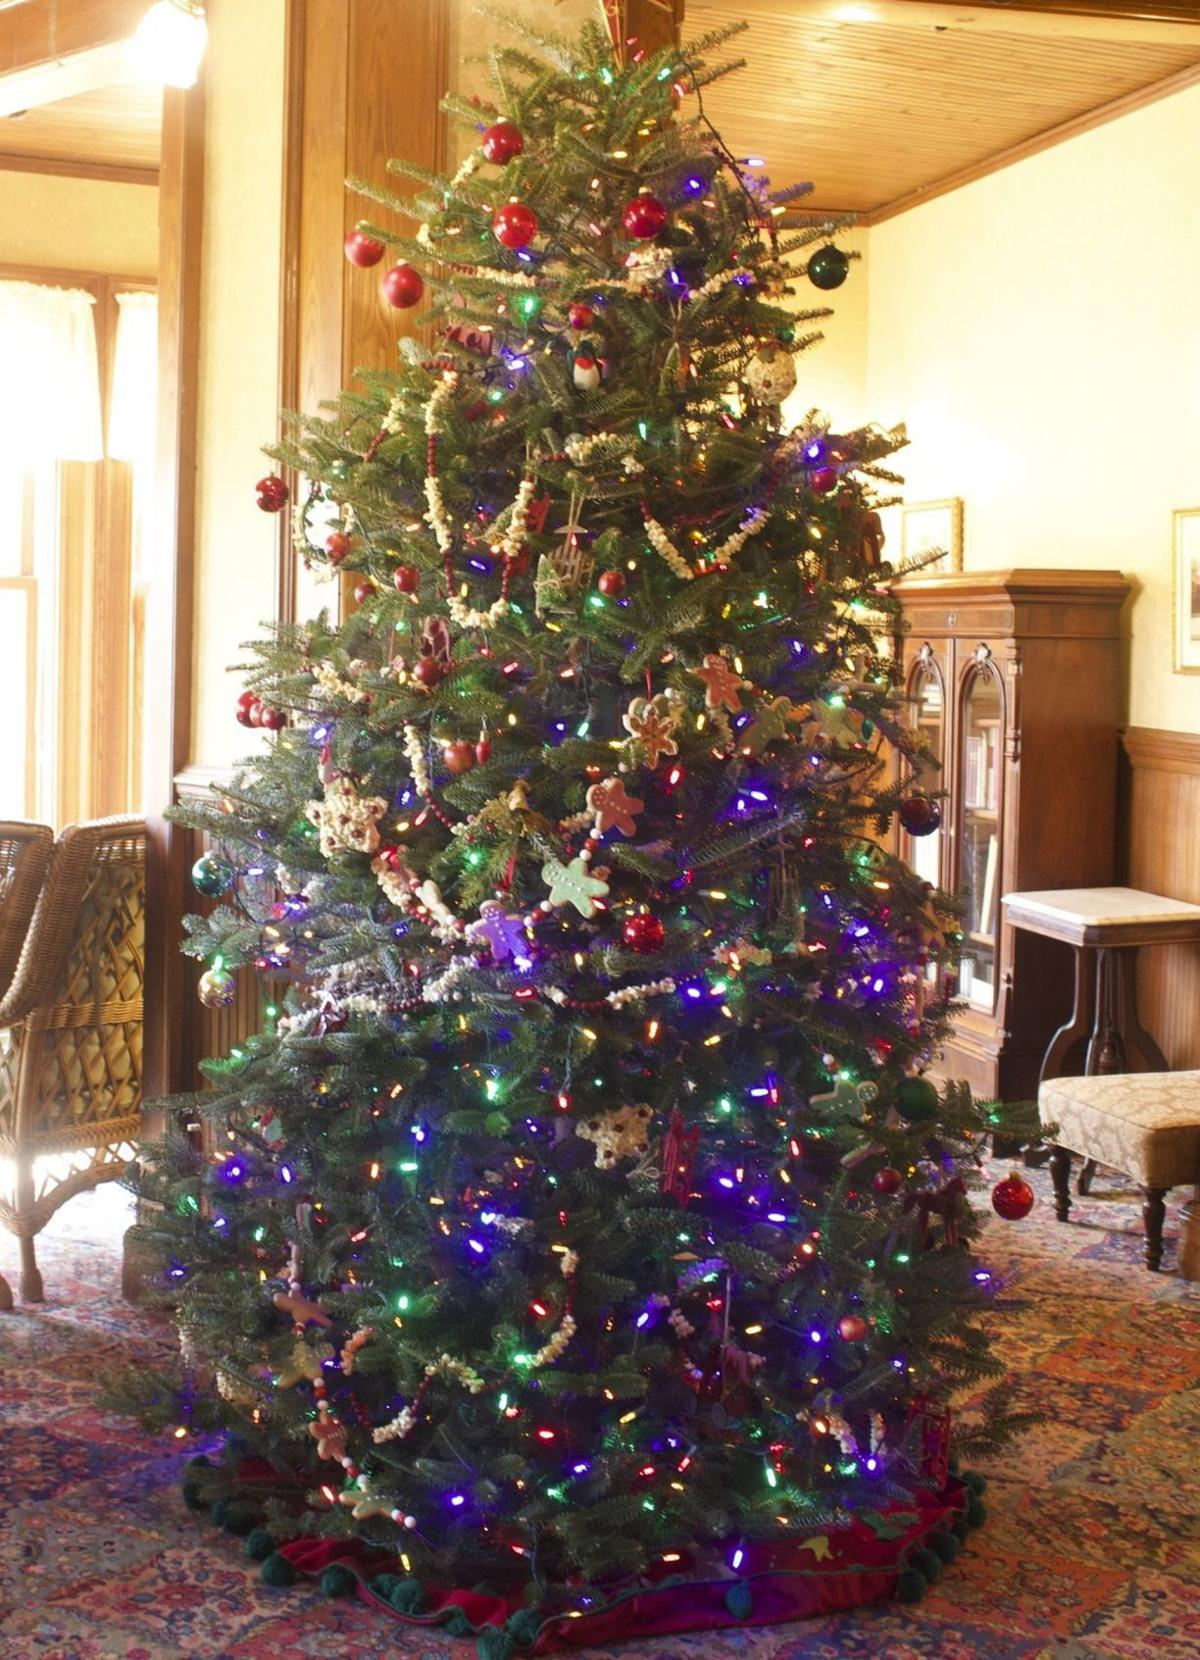 s Christmas tree style in Lincoln and around the world